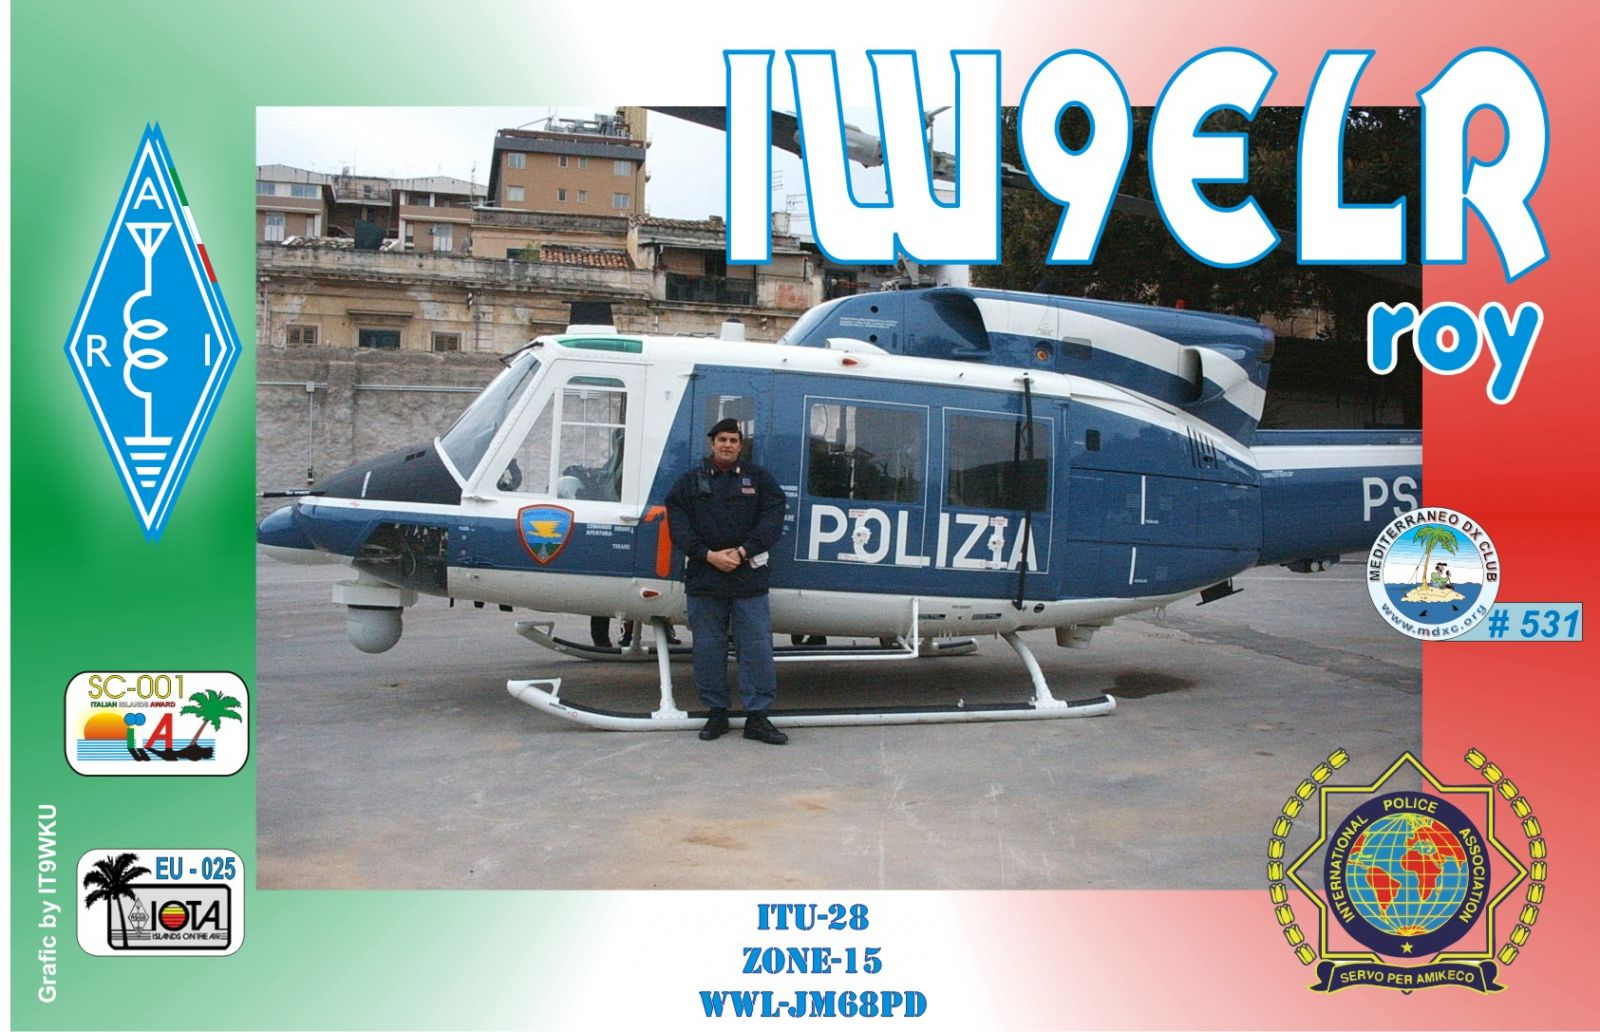 QSL image for IW9ELR